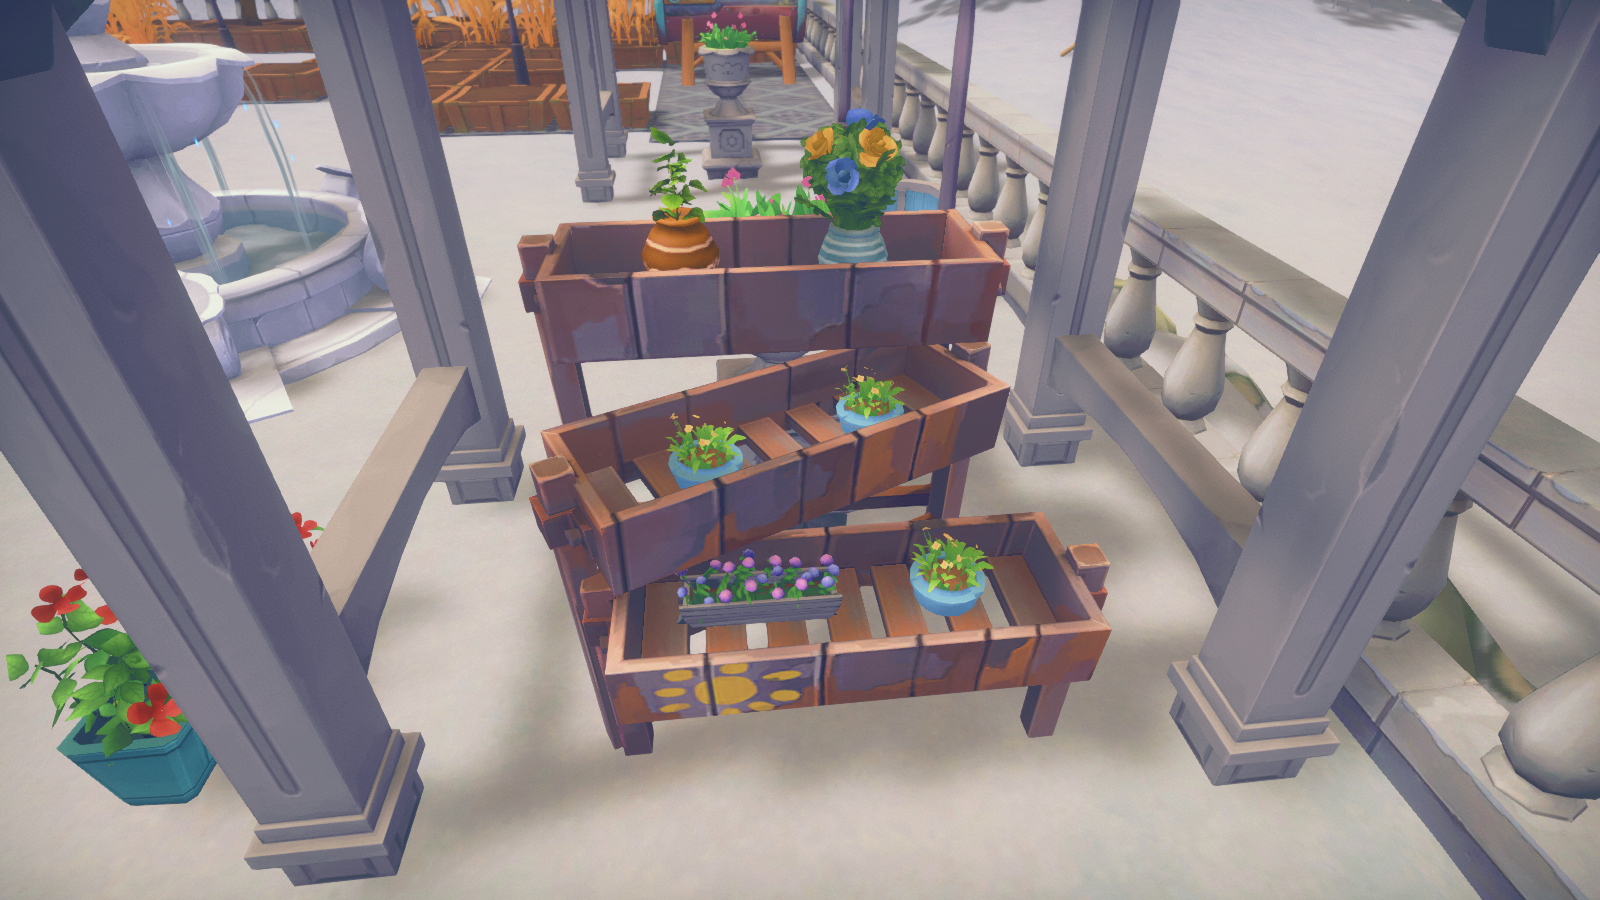 Furniture My Time At Portia Wiki Fandom Powered By Wikia